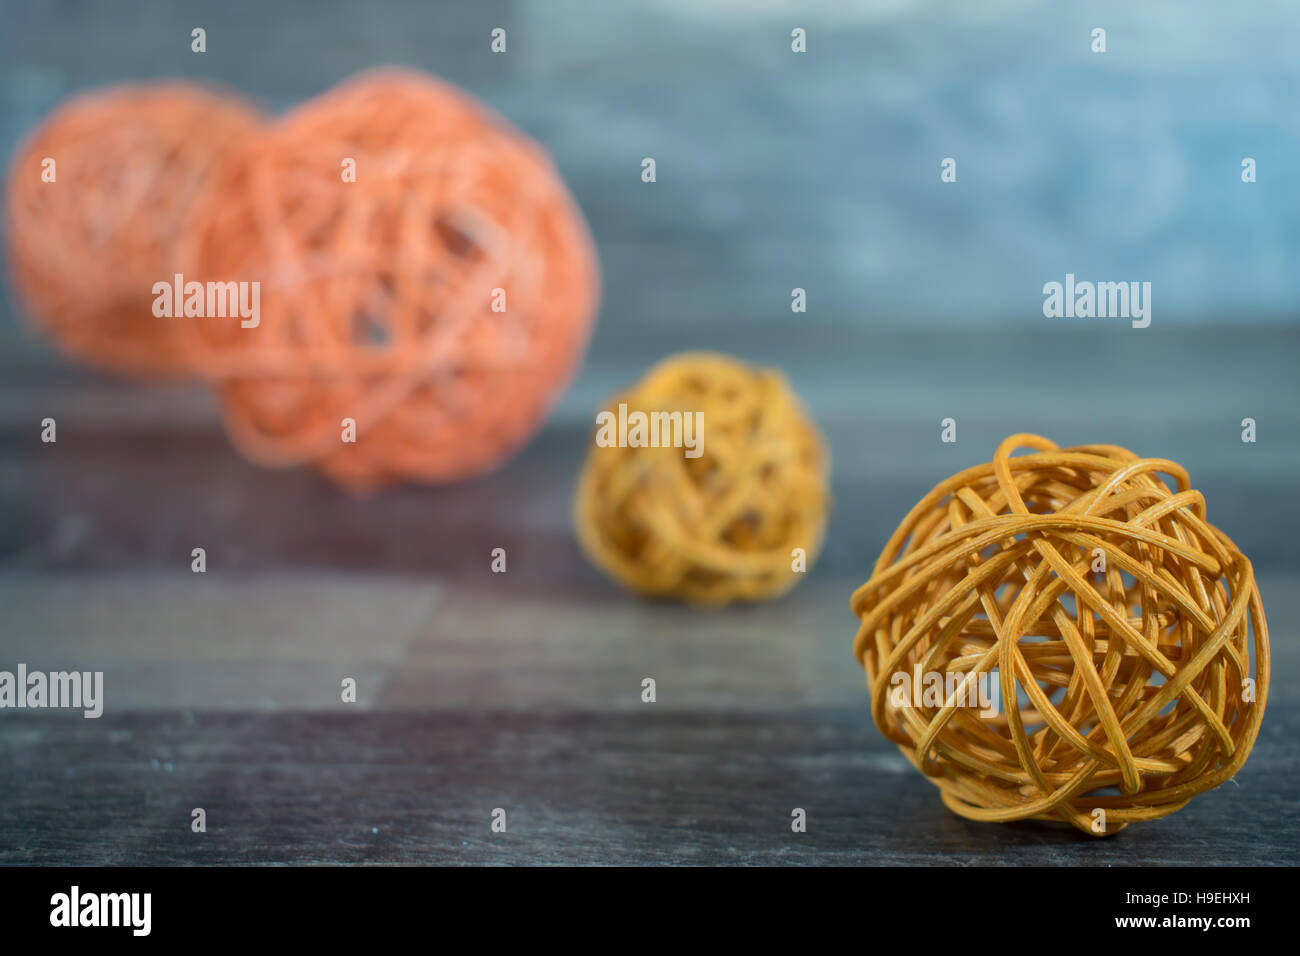 4 braided balls in yellow and orange on a wooden base - Stock Image